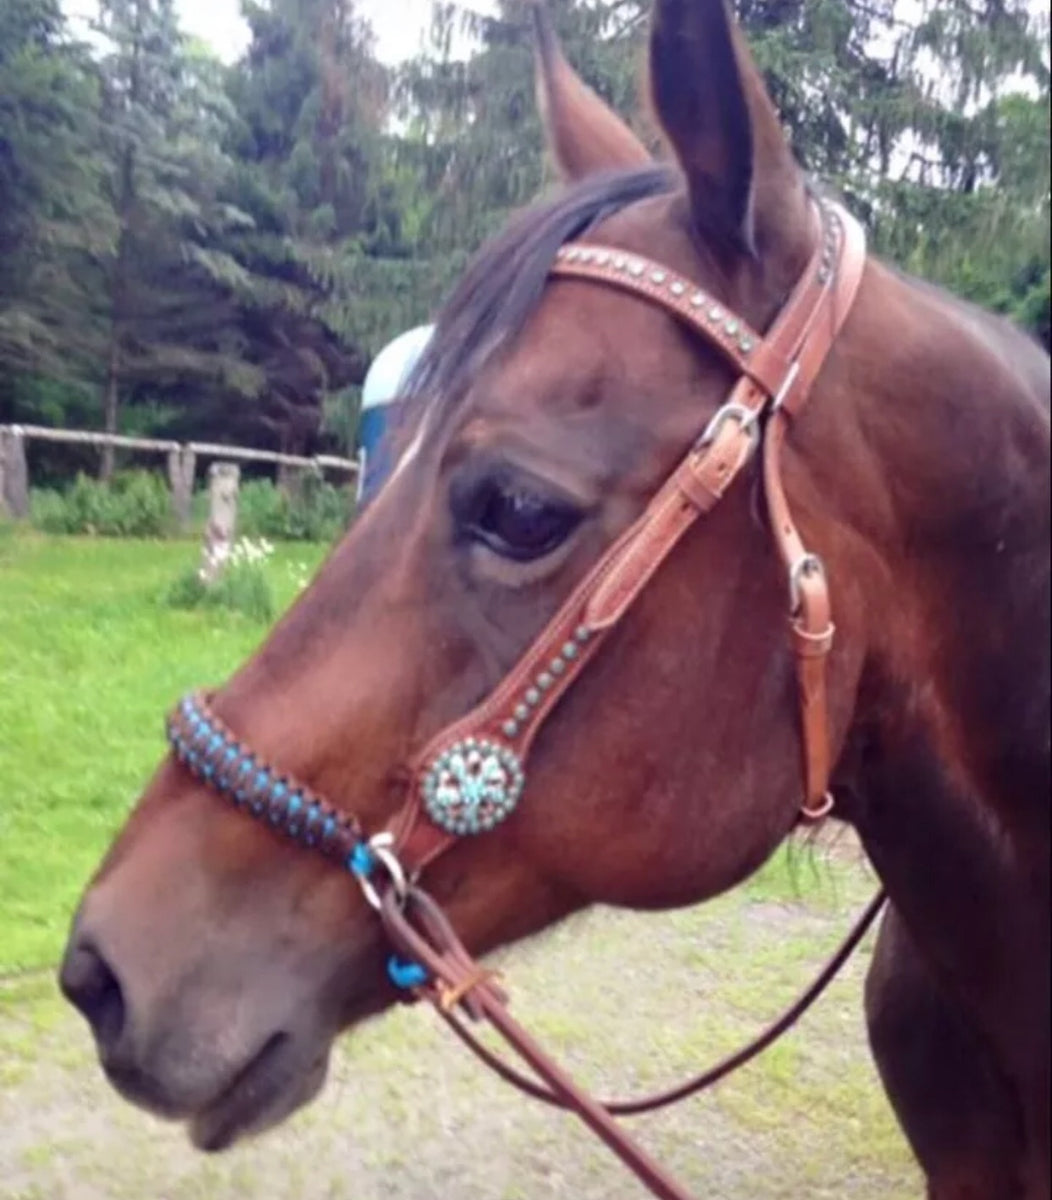 side pull hackamore attachment with a whoa dark walnut brown ...mini to draft